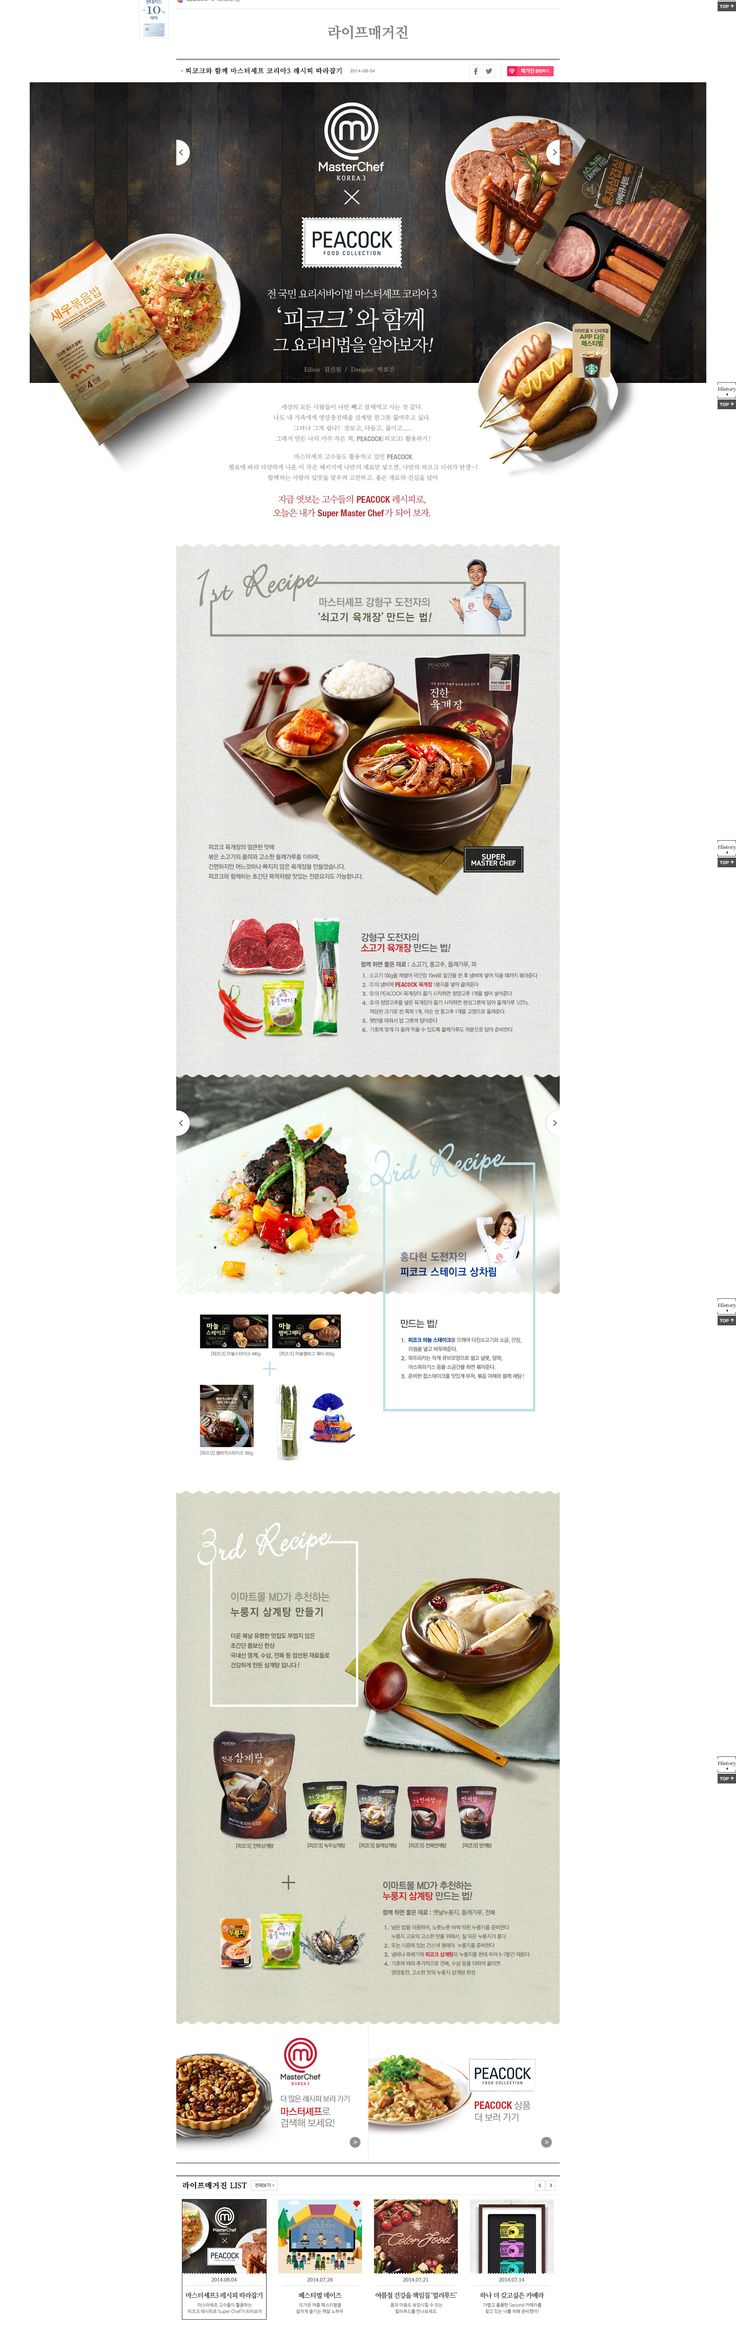 This website design for Master Chef Korea has a real photographic quality to it--looks like a magazine! It presents the food very well.